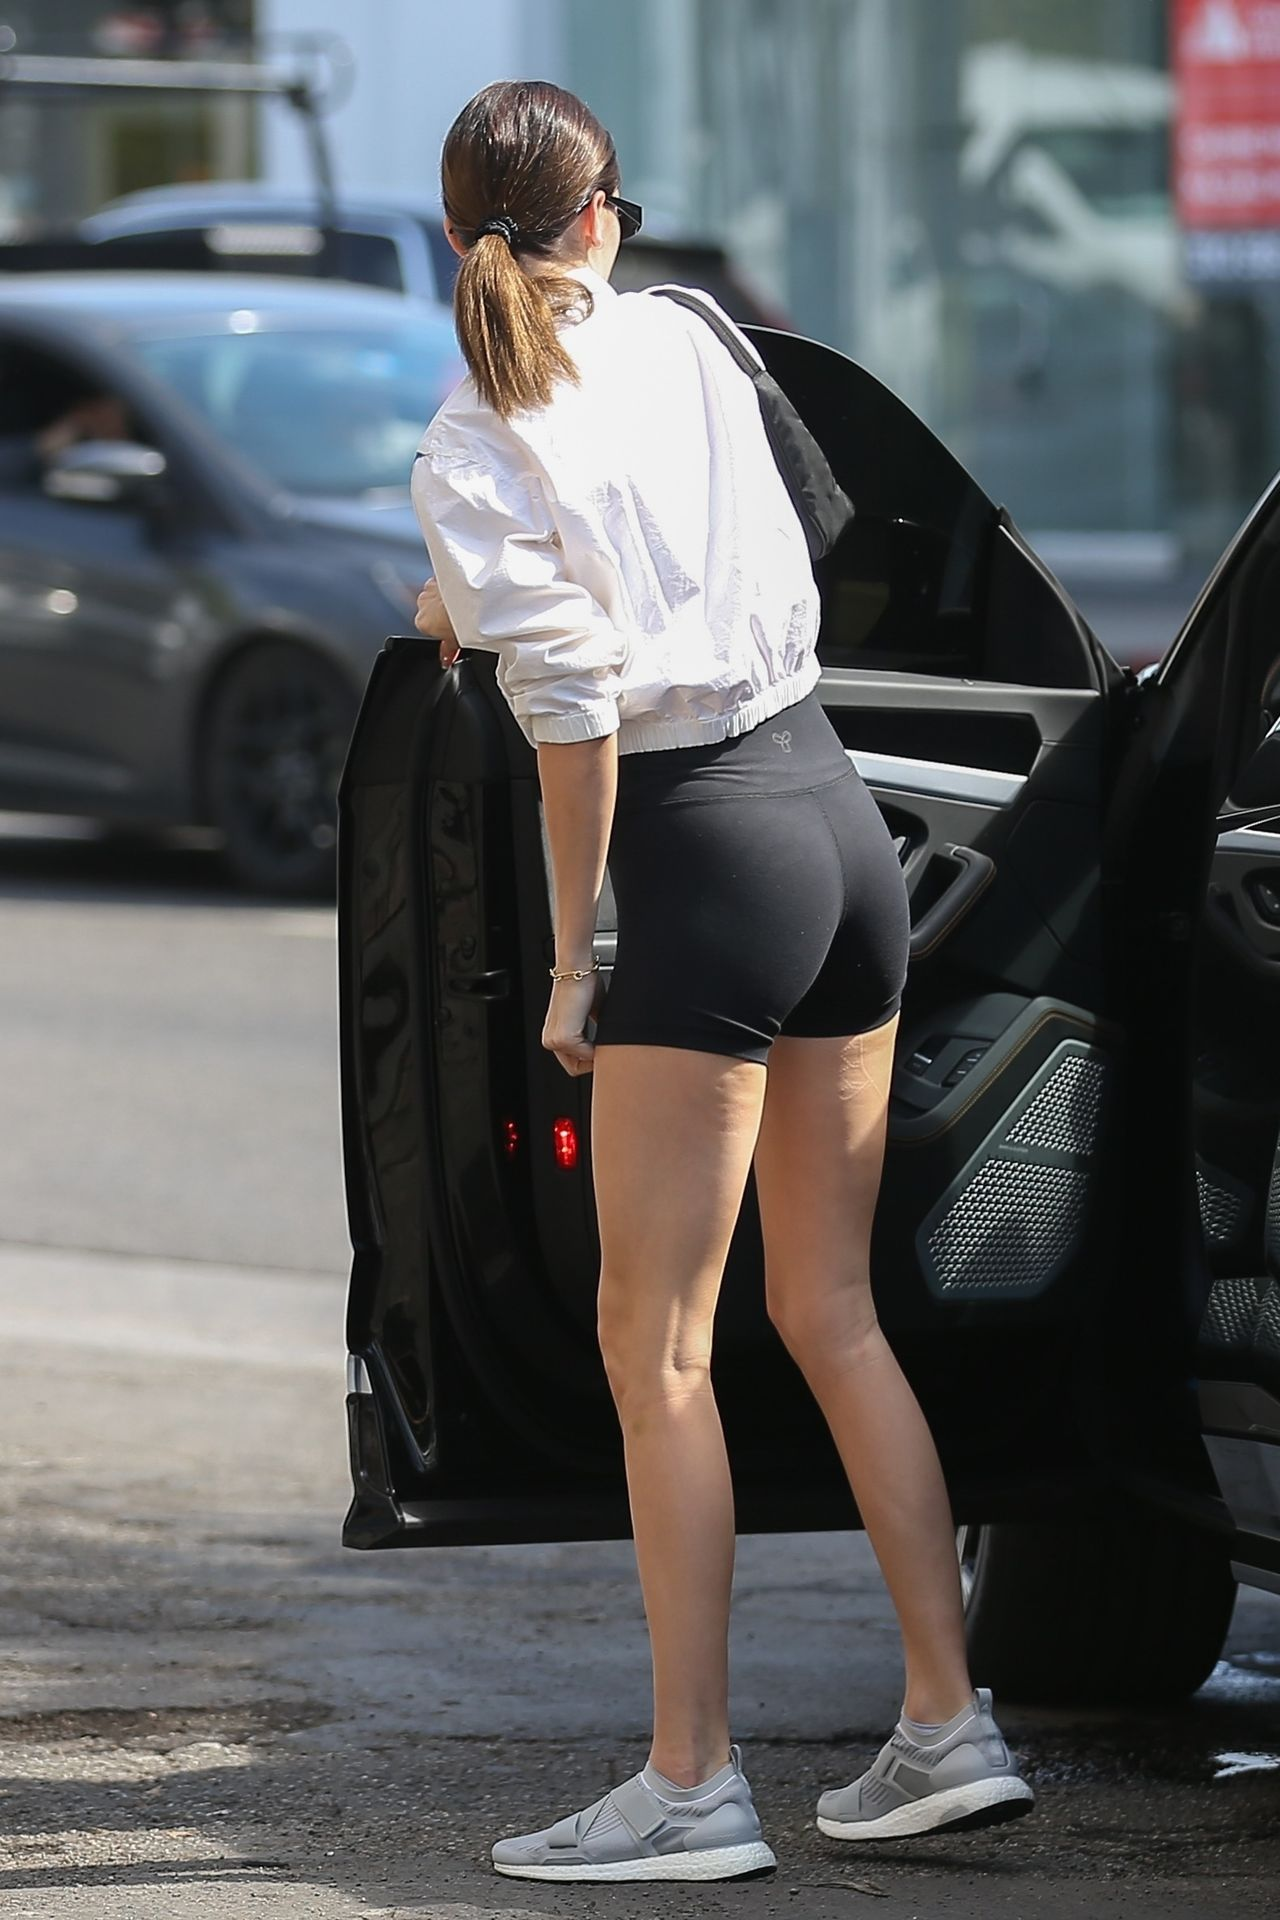 Kendall Jenner Showcases Her Cellulite Legs In Tiny Spandex Shorts In Los Angeles 0030